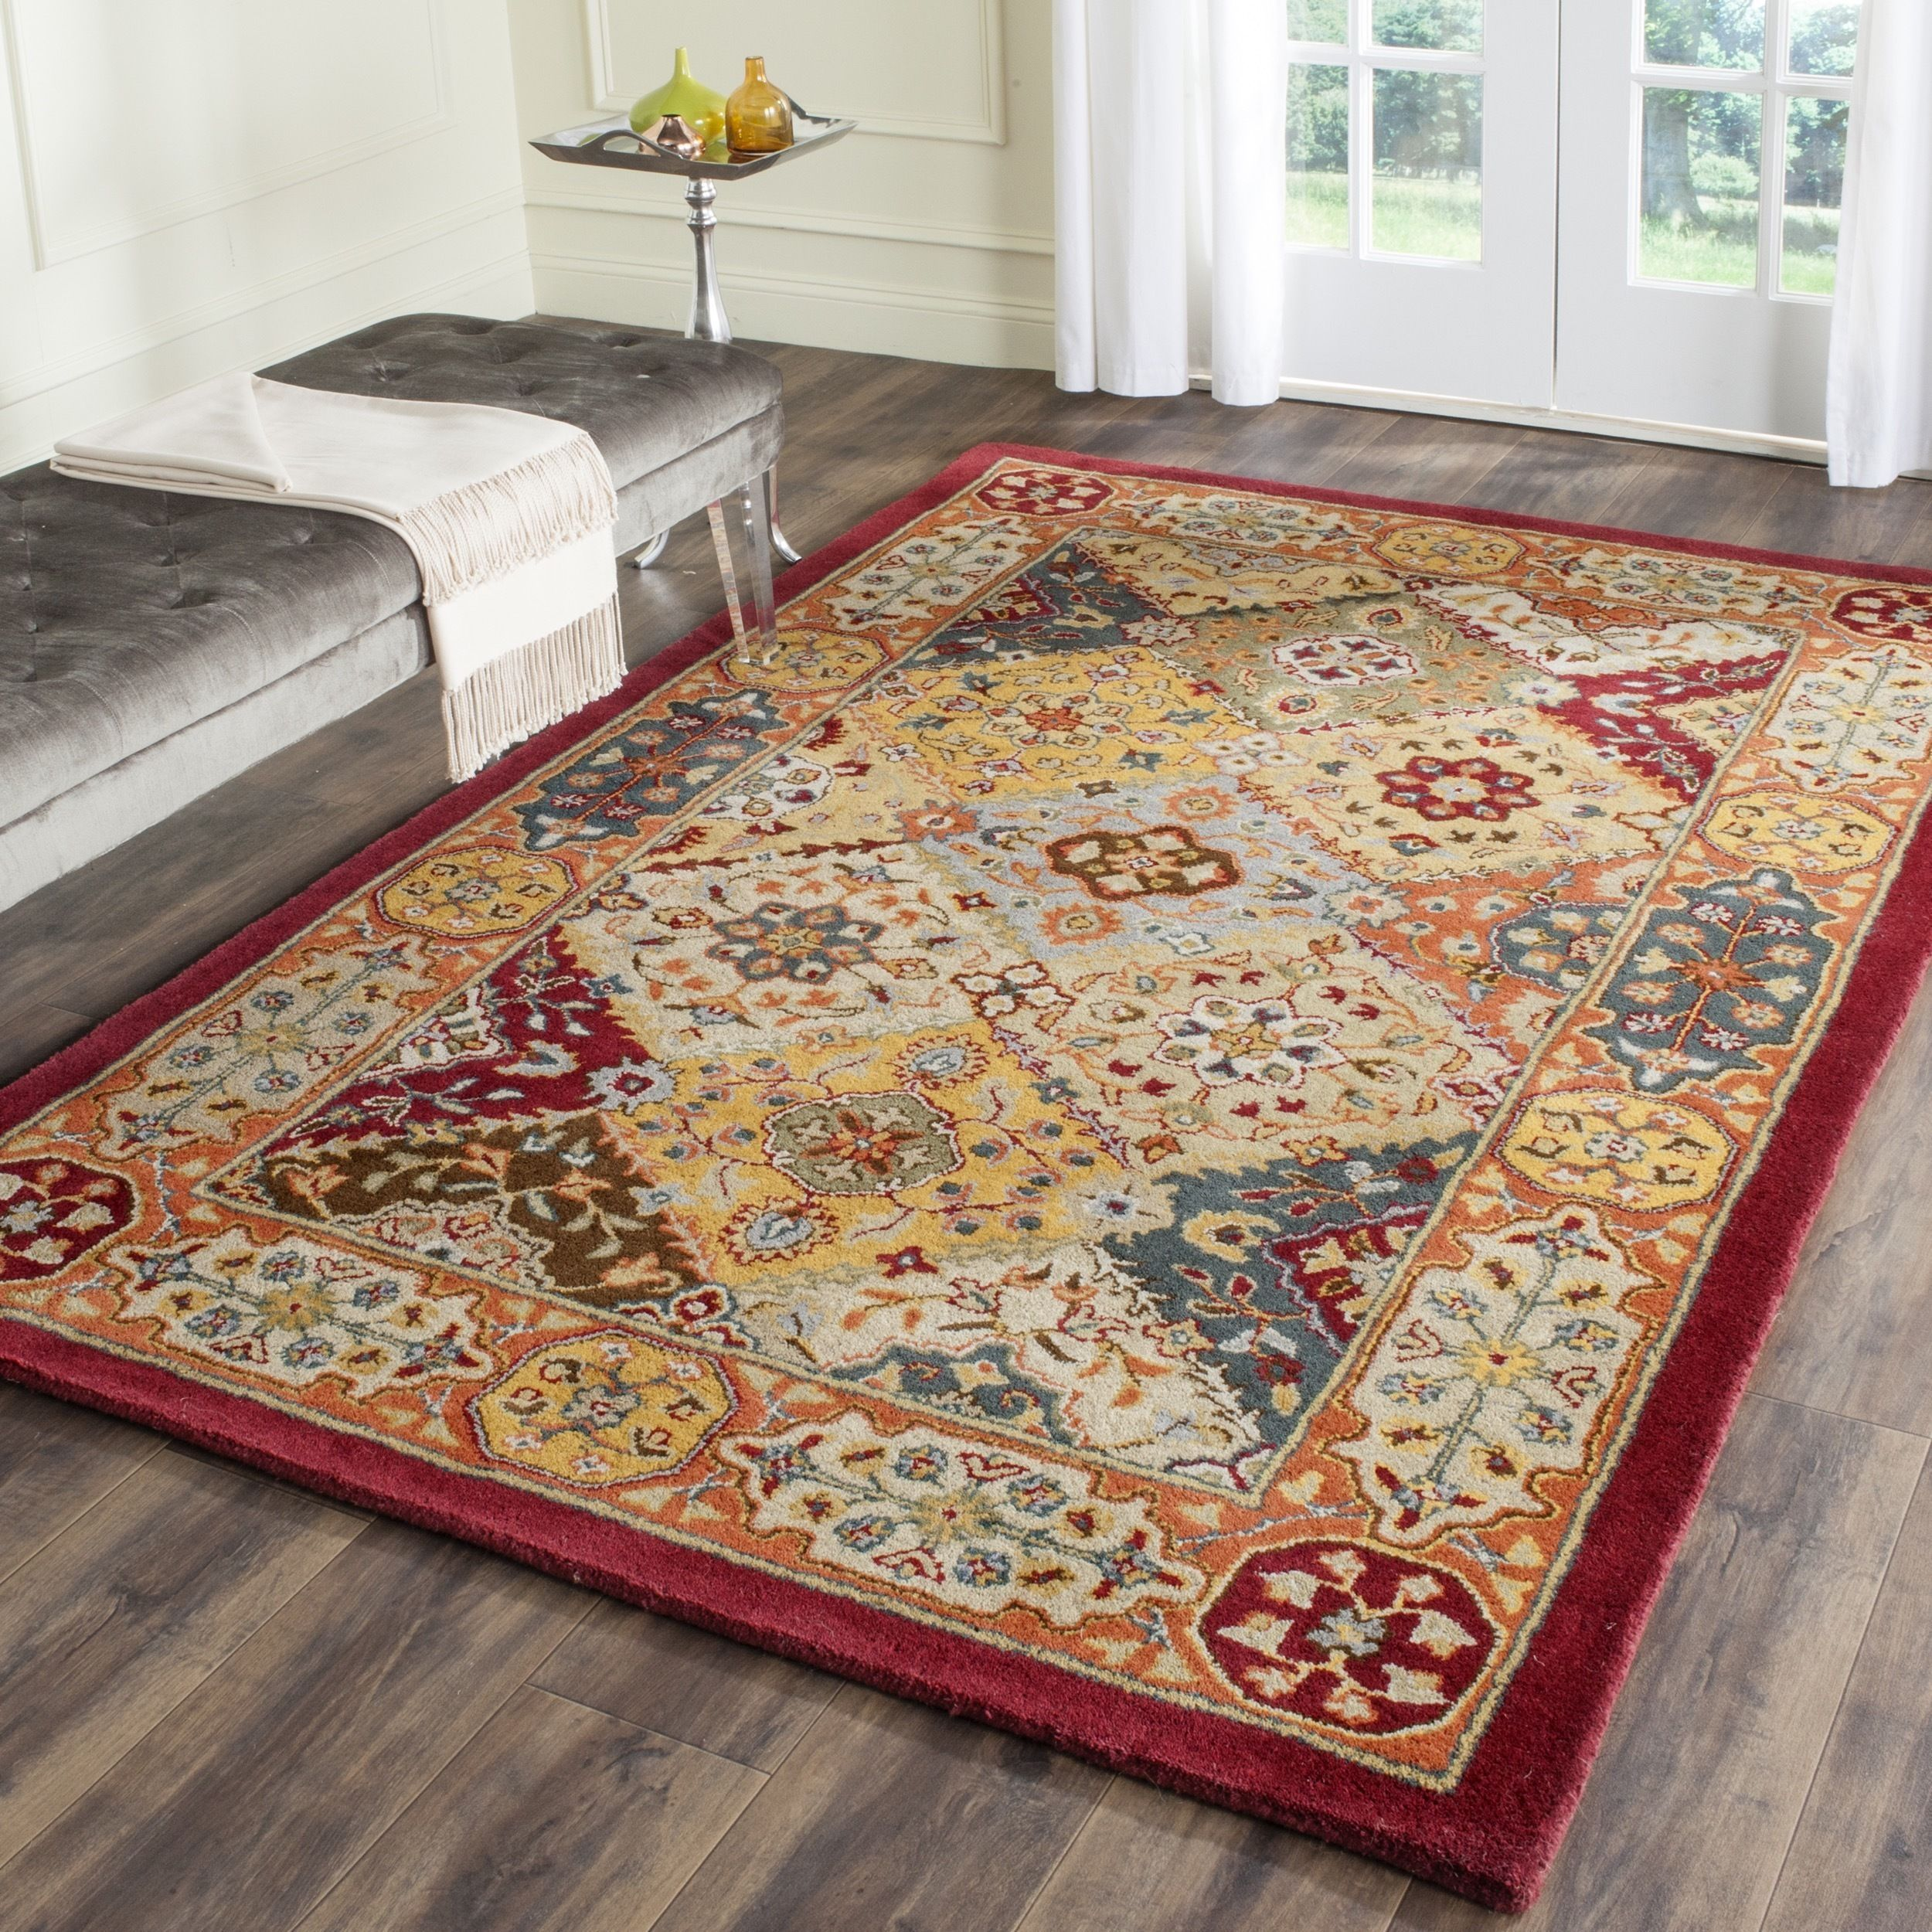 Safavieh Handmade Heritage Traditional Bakhtiari Multi Red Wool Rug